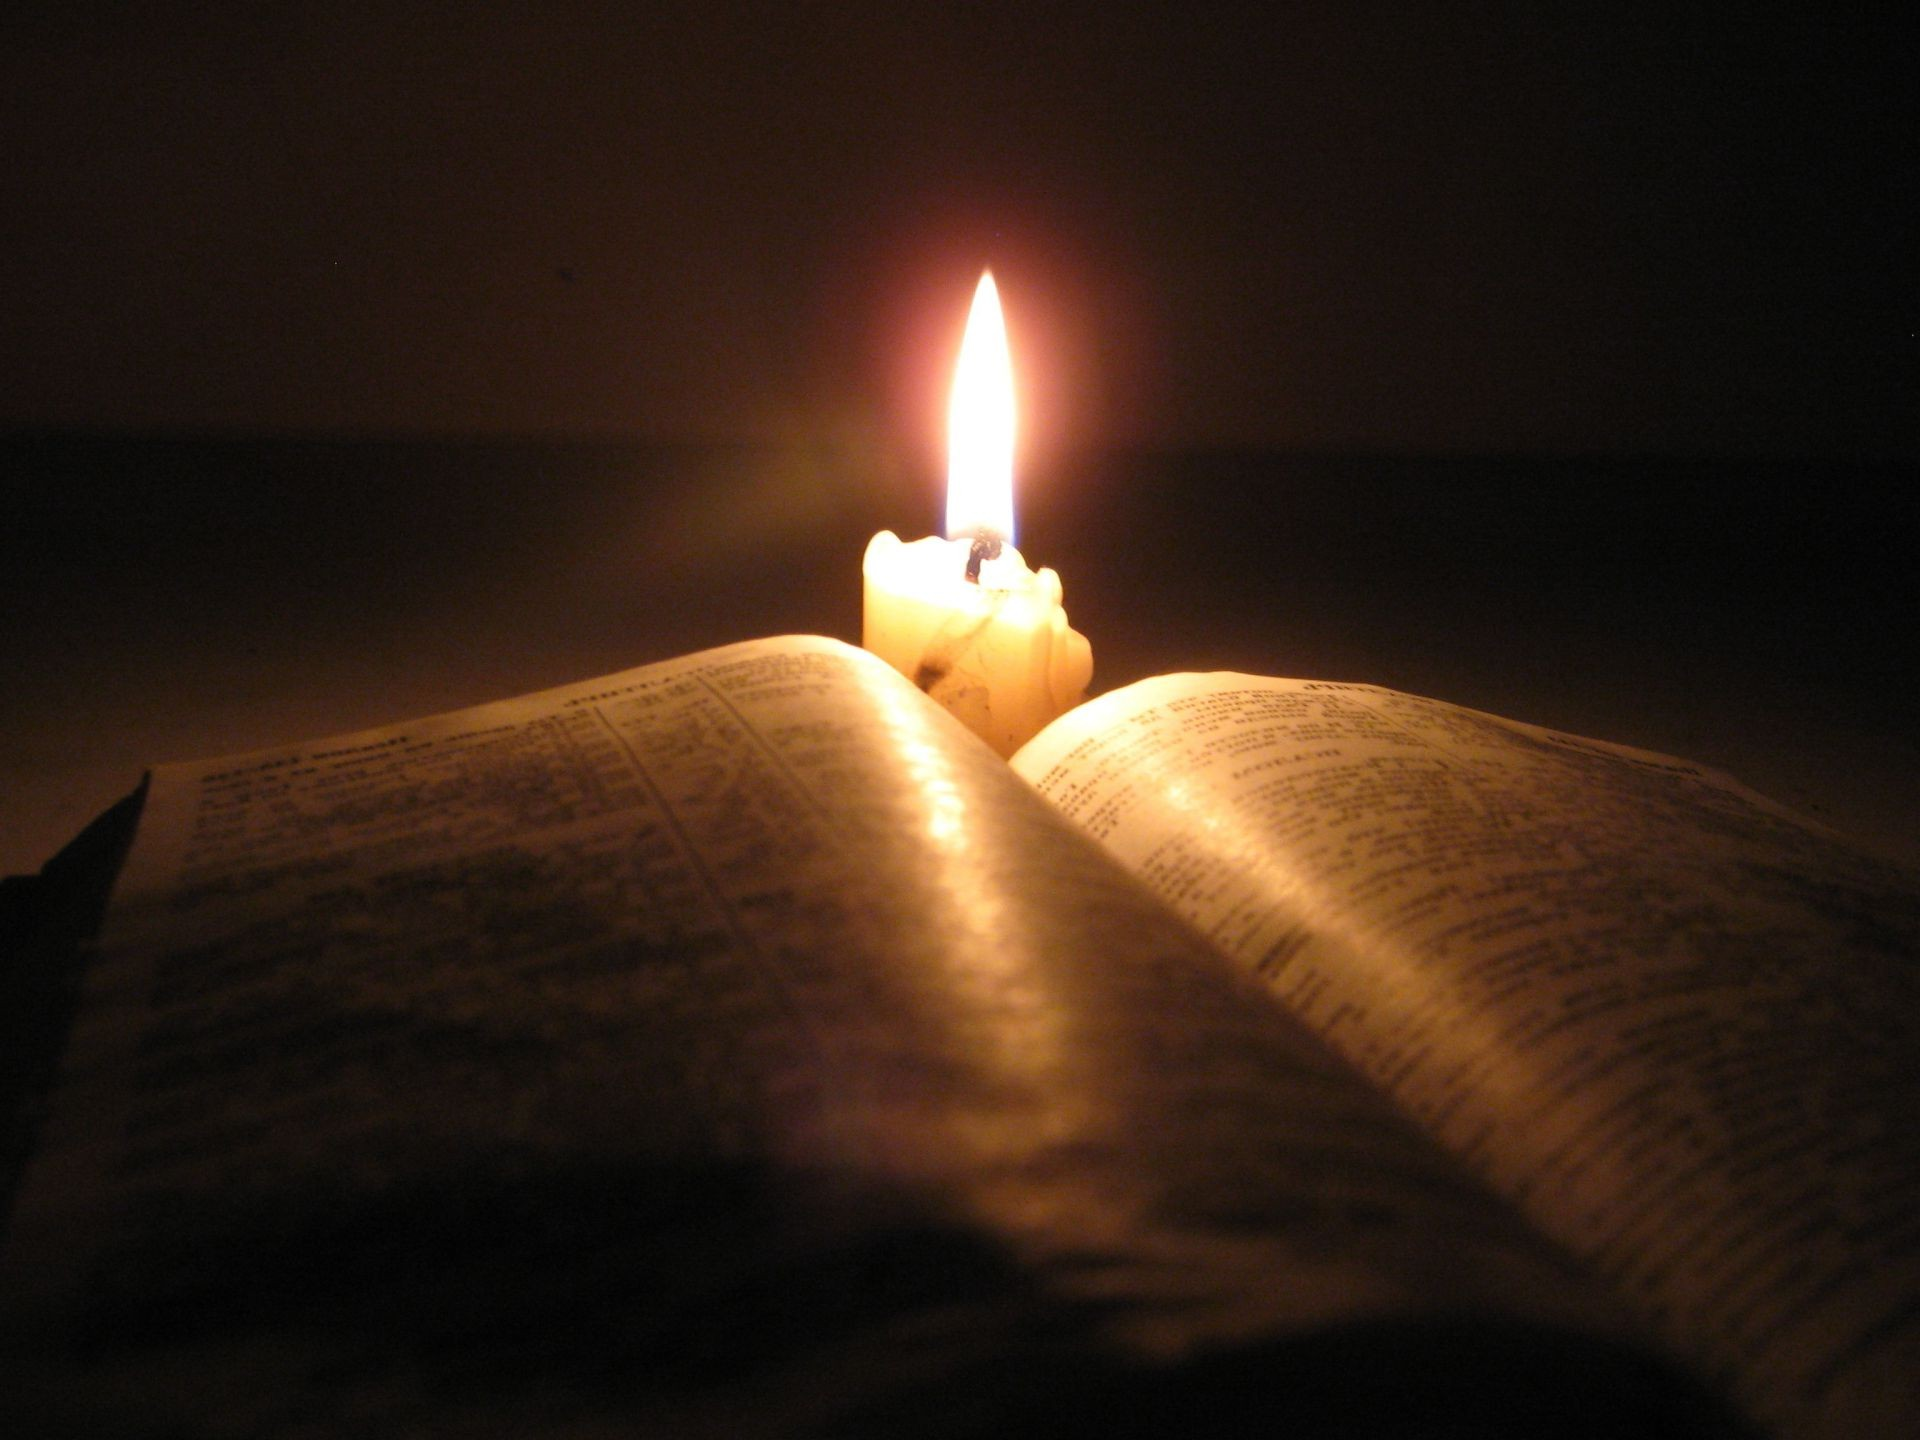 Book Candle Bible Dark Phone Wallpapers